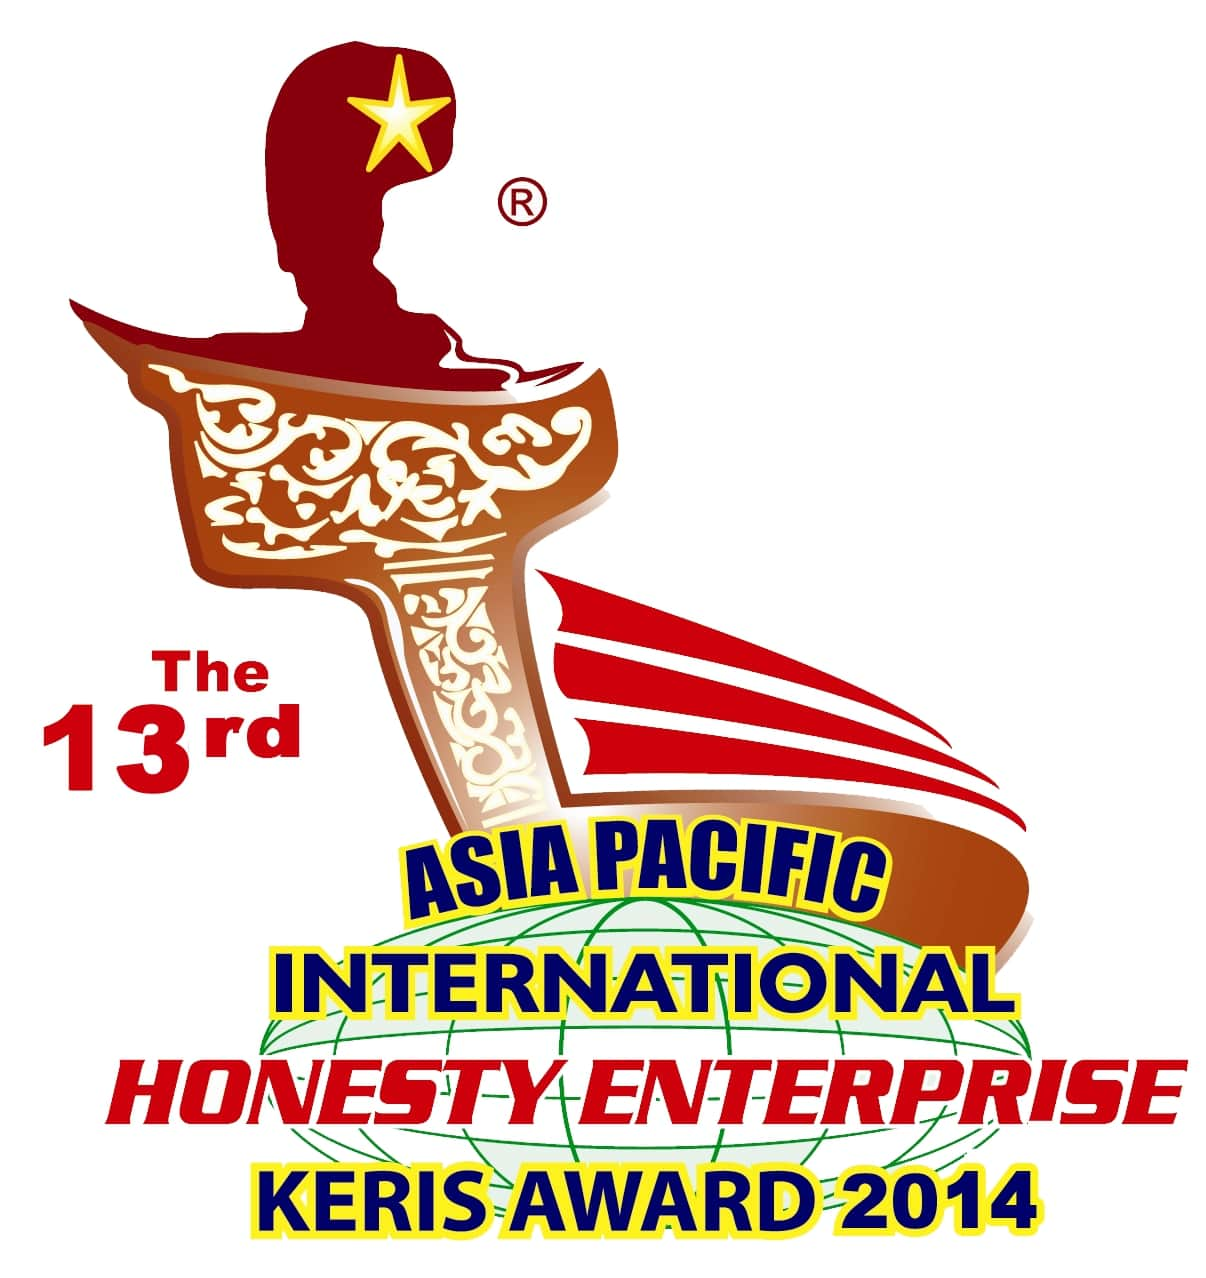 Keris Award